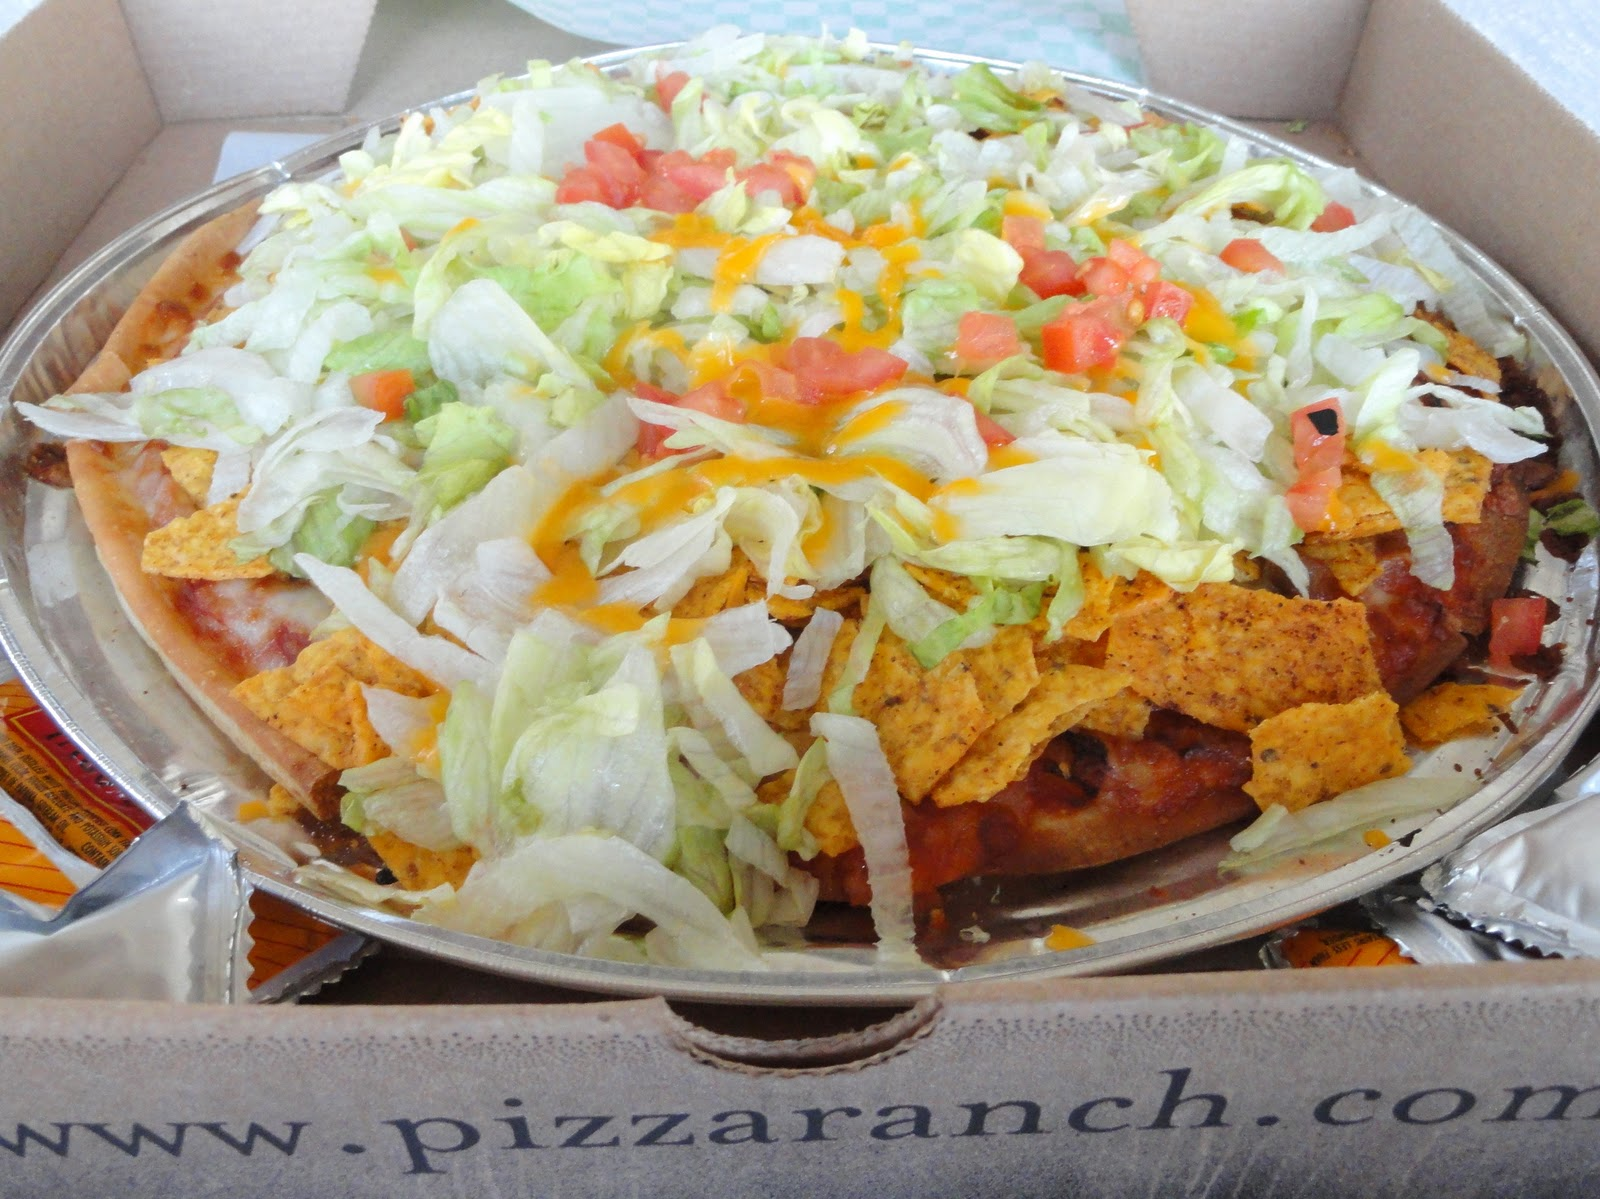 As Good As Gluten: Pizza Ranch - Gluten-Free Taco Pizza